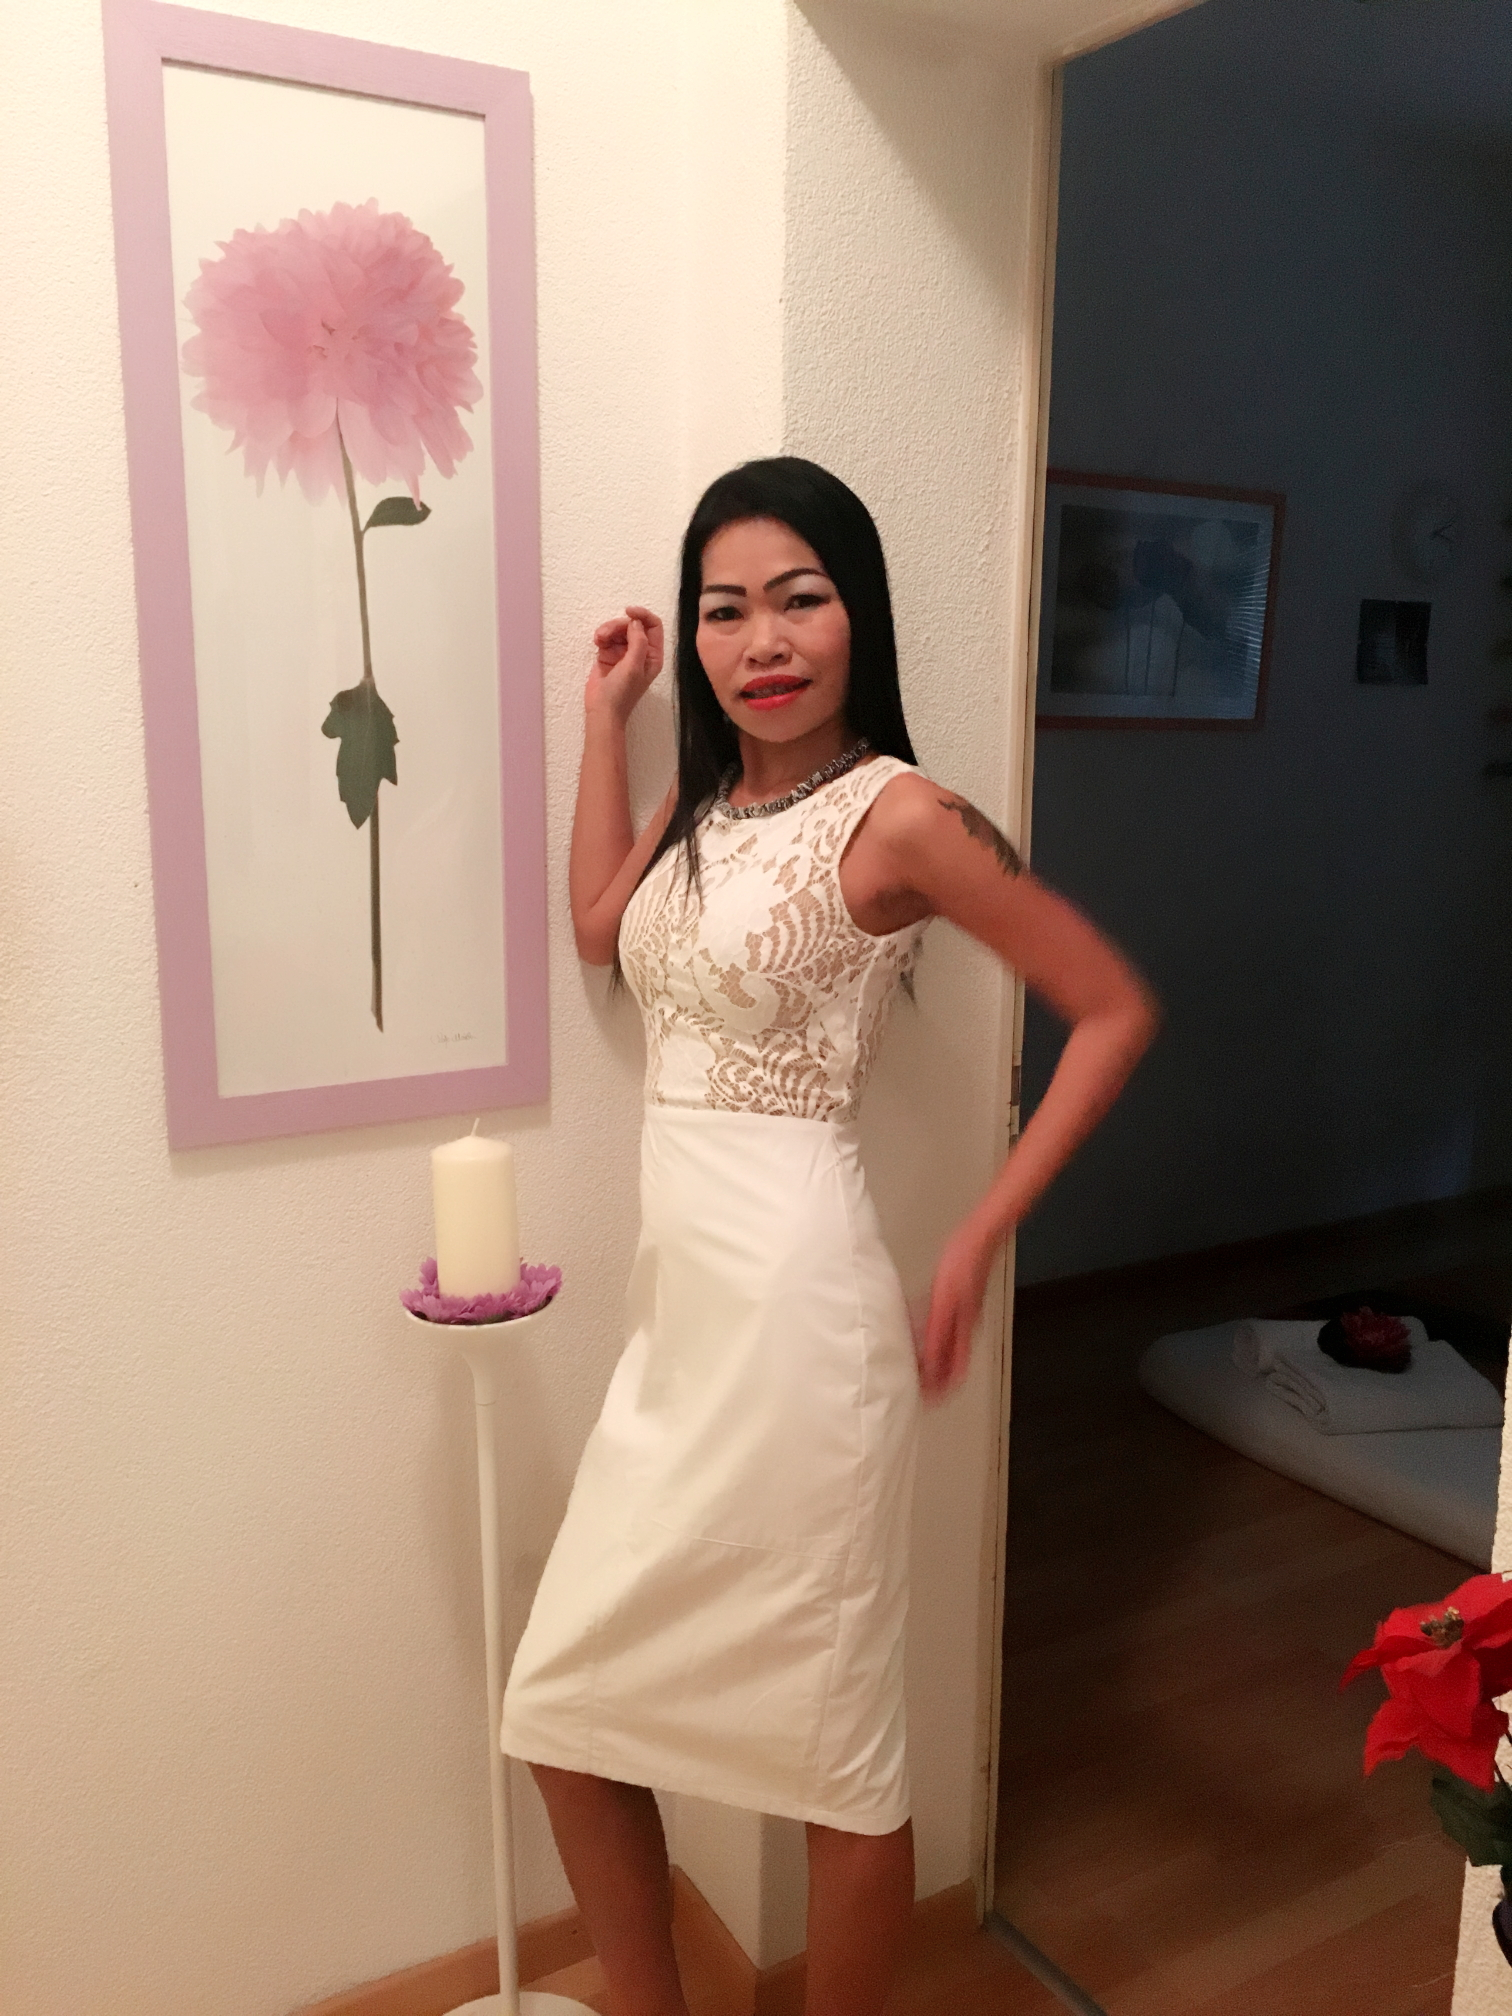 thai massage vestjylland stor strapon